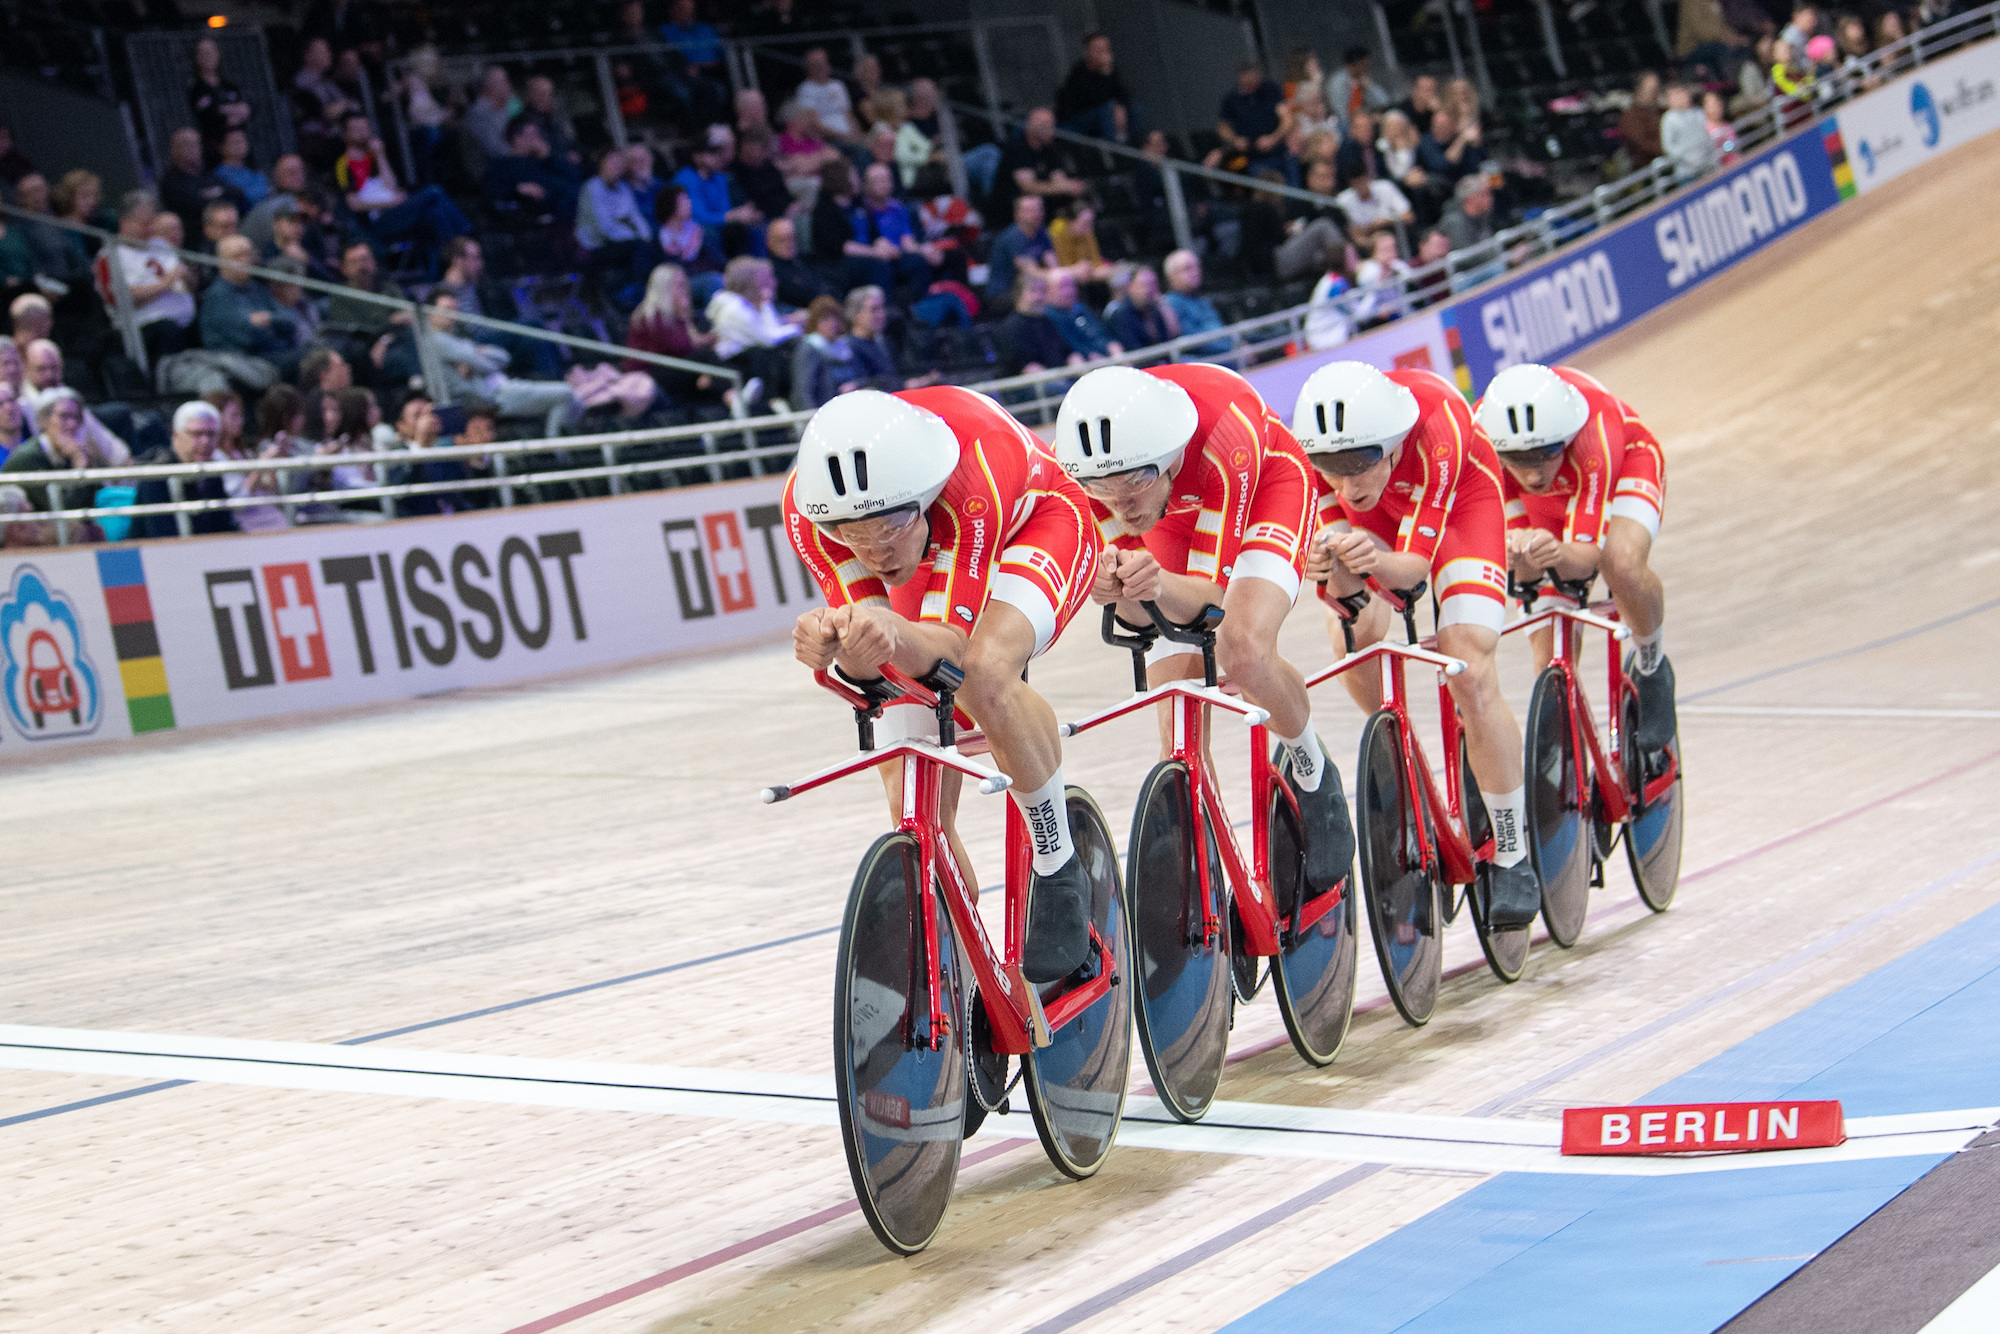 Denmark set new men's team pursuit world record in qualifying as GB struggle at Track World Championships 2020 - Cycling Weekly